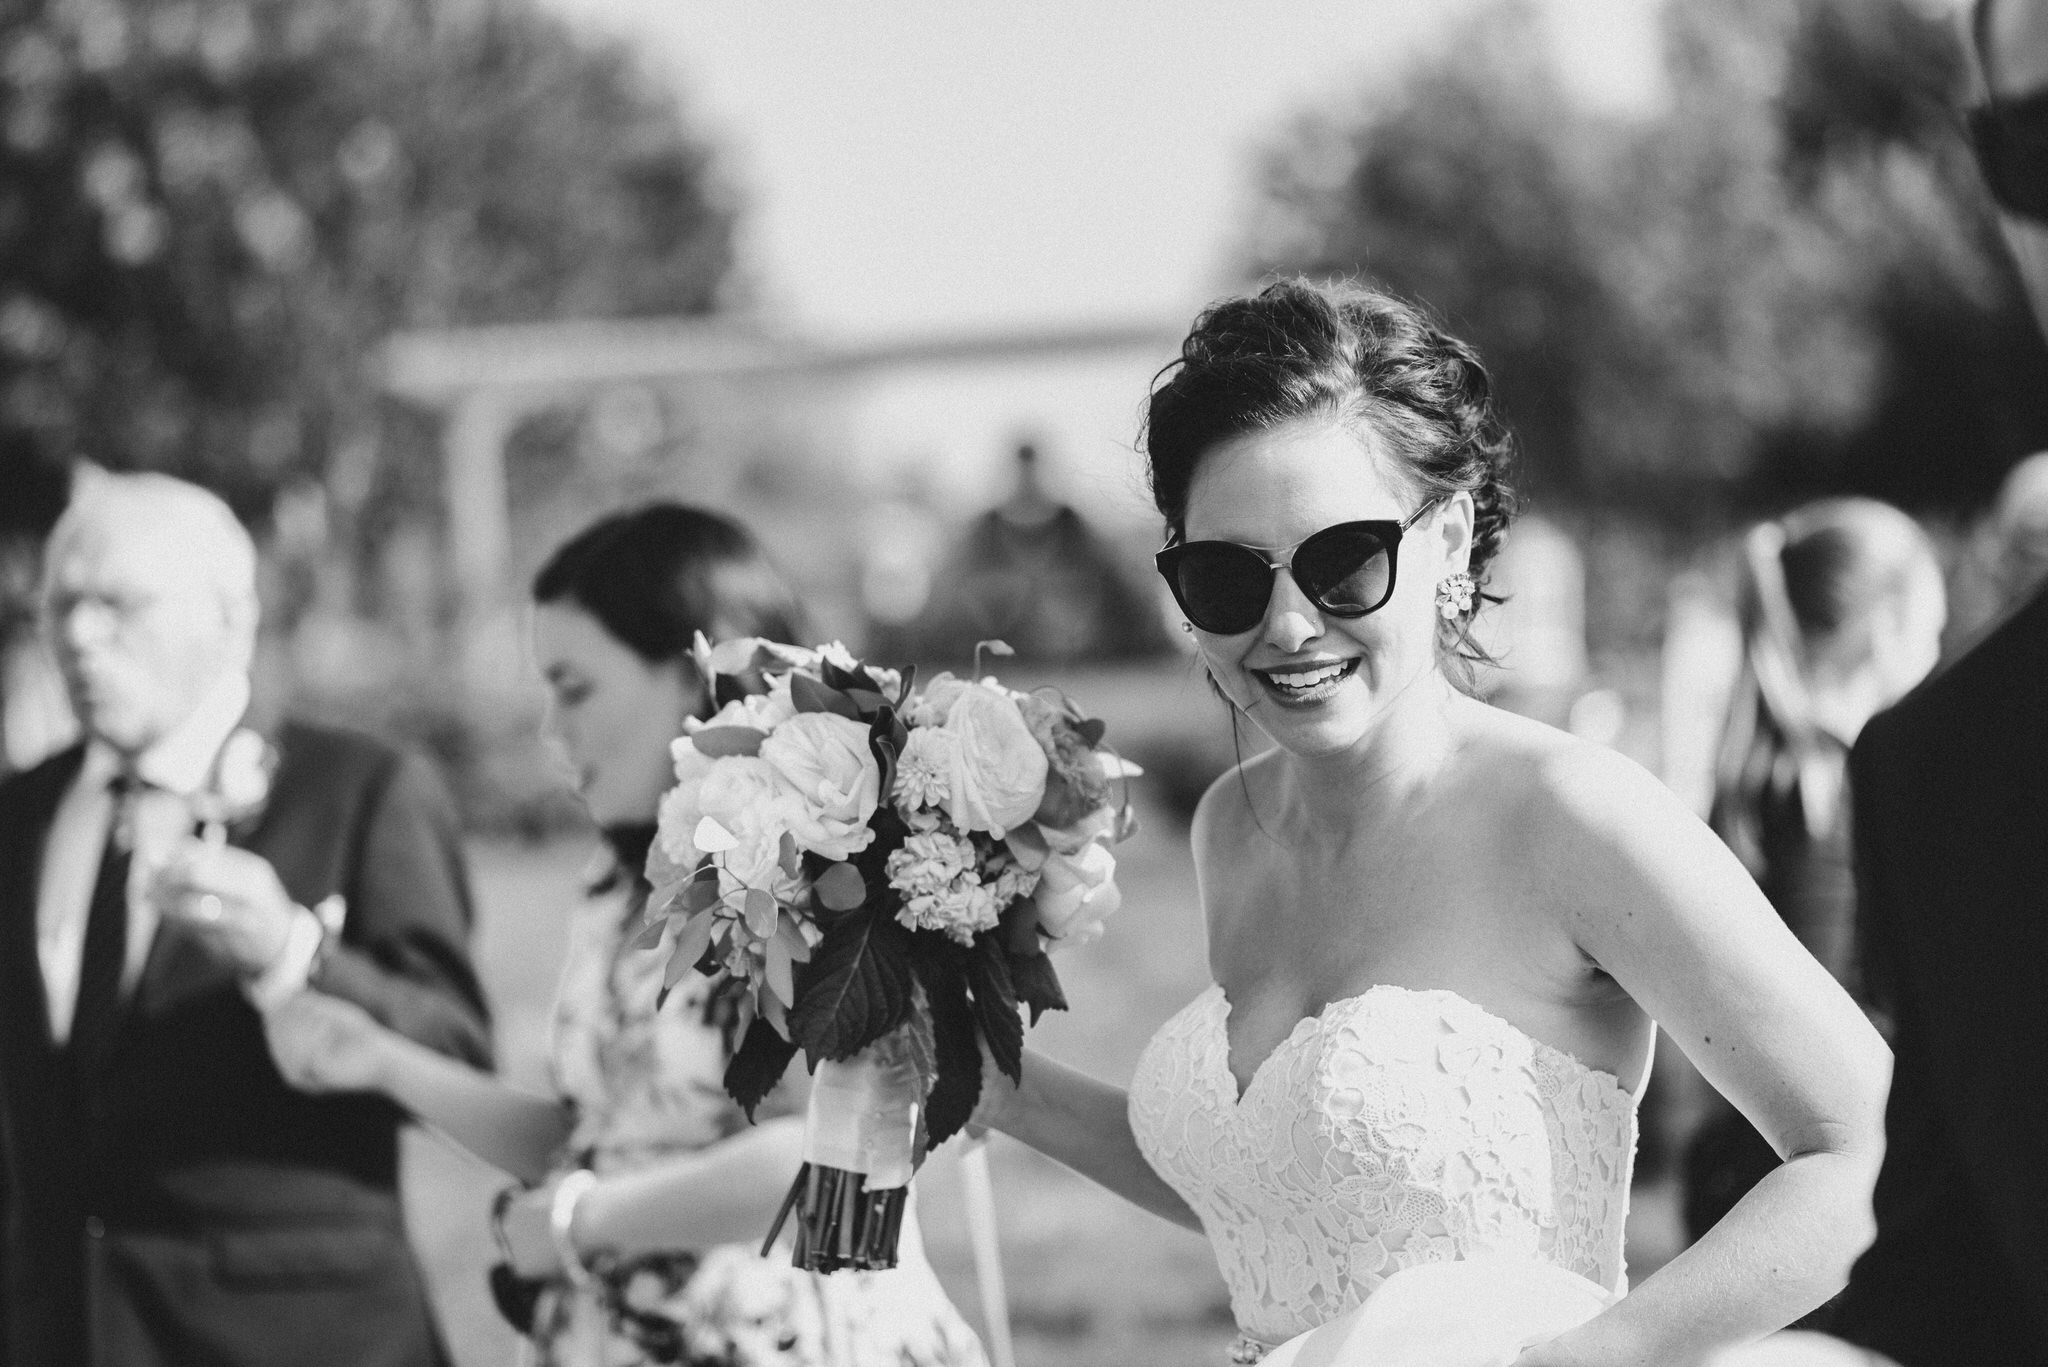 Bloomfield Gardens Wedding - bride with sunglasses